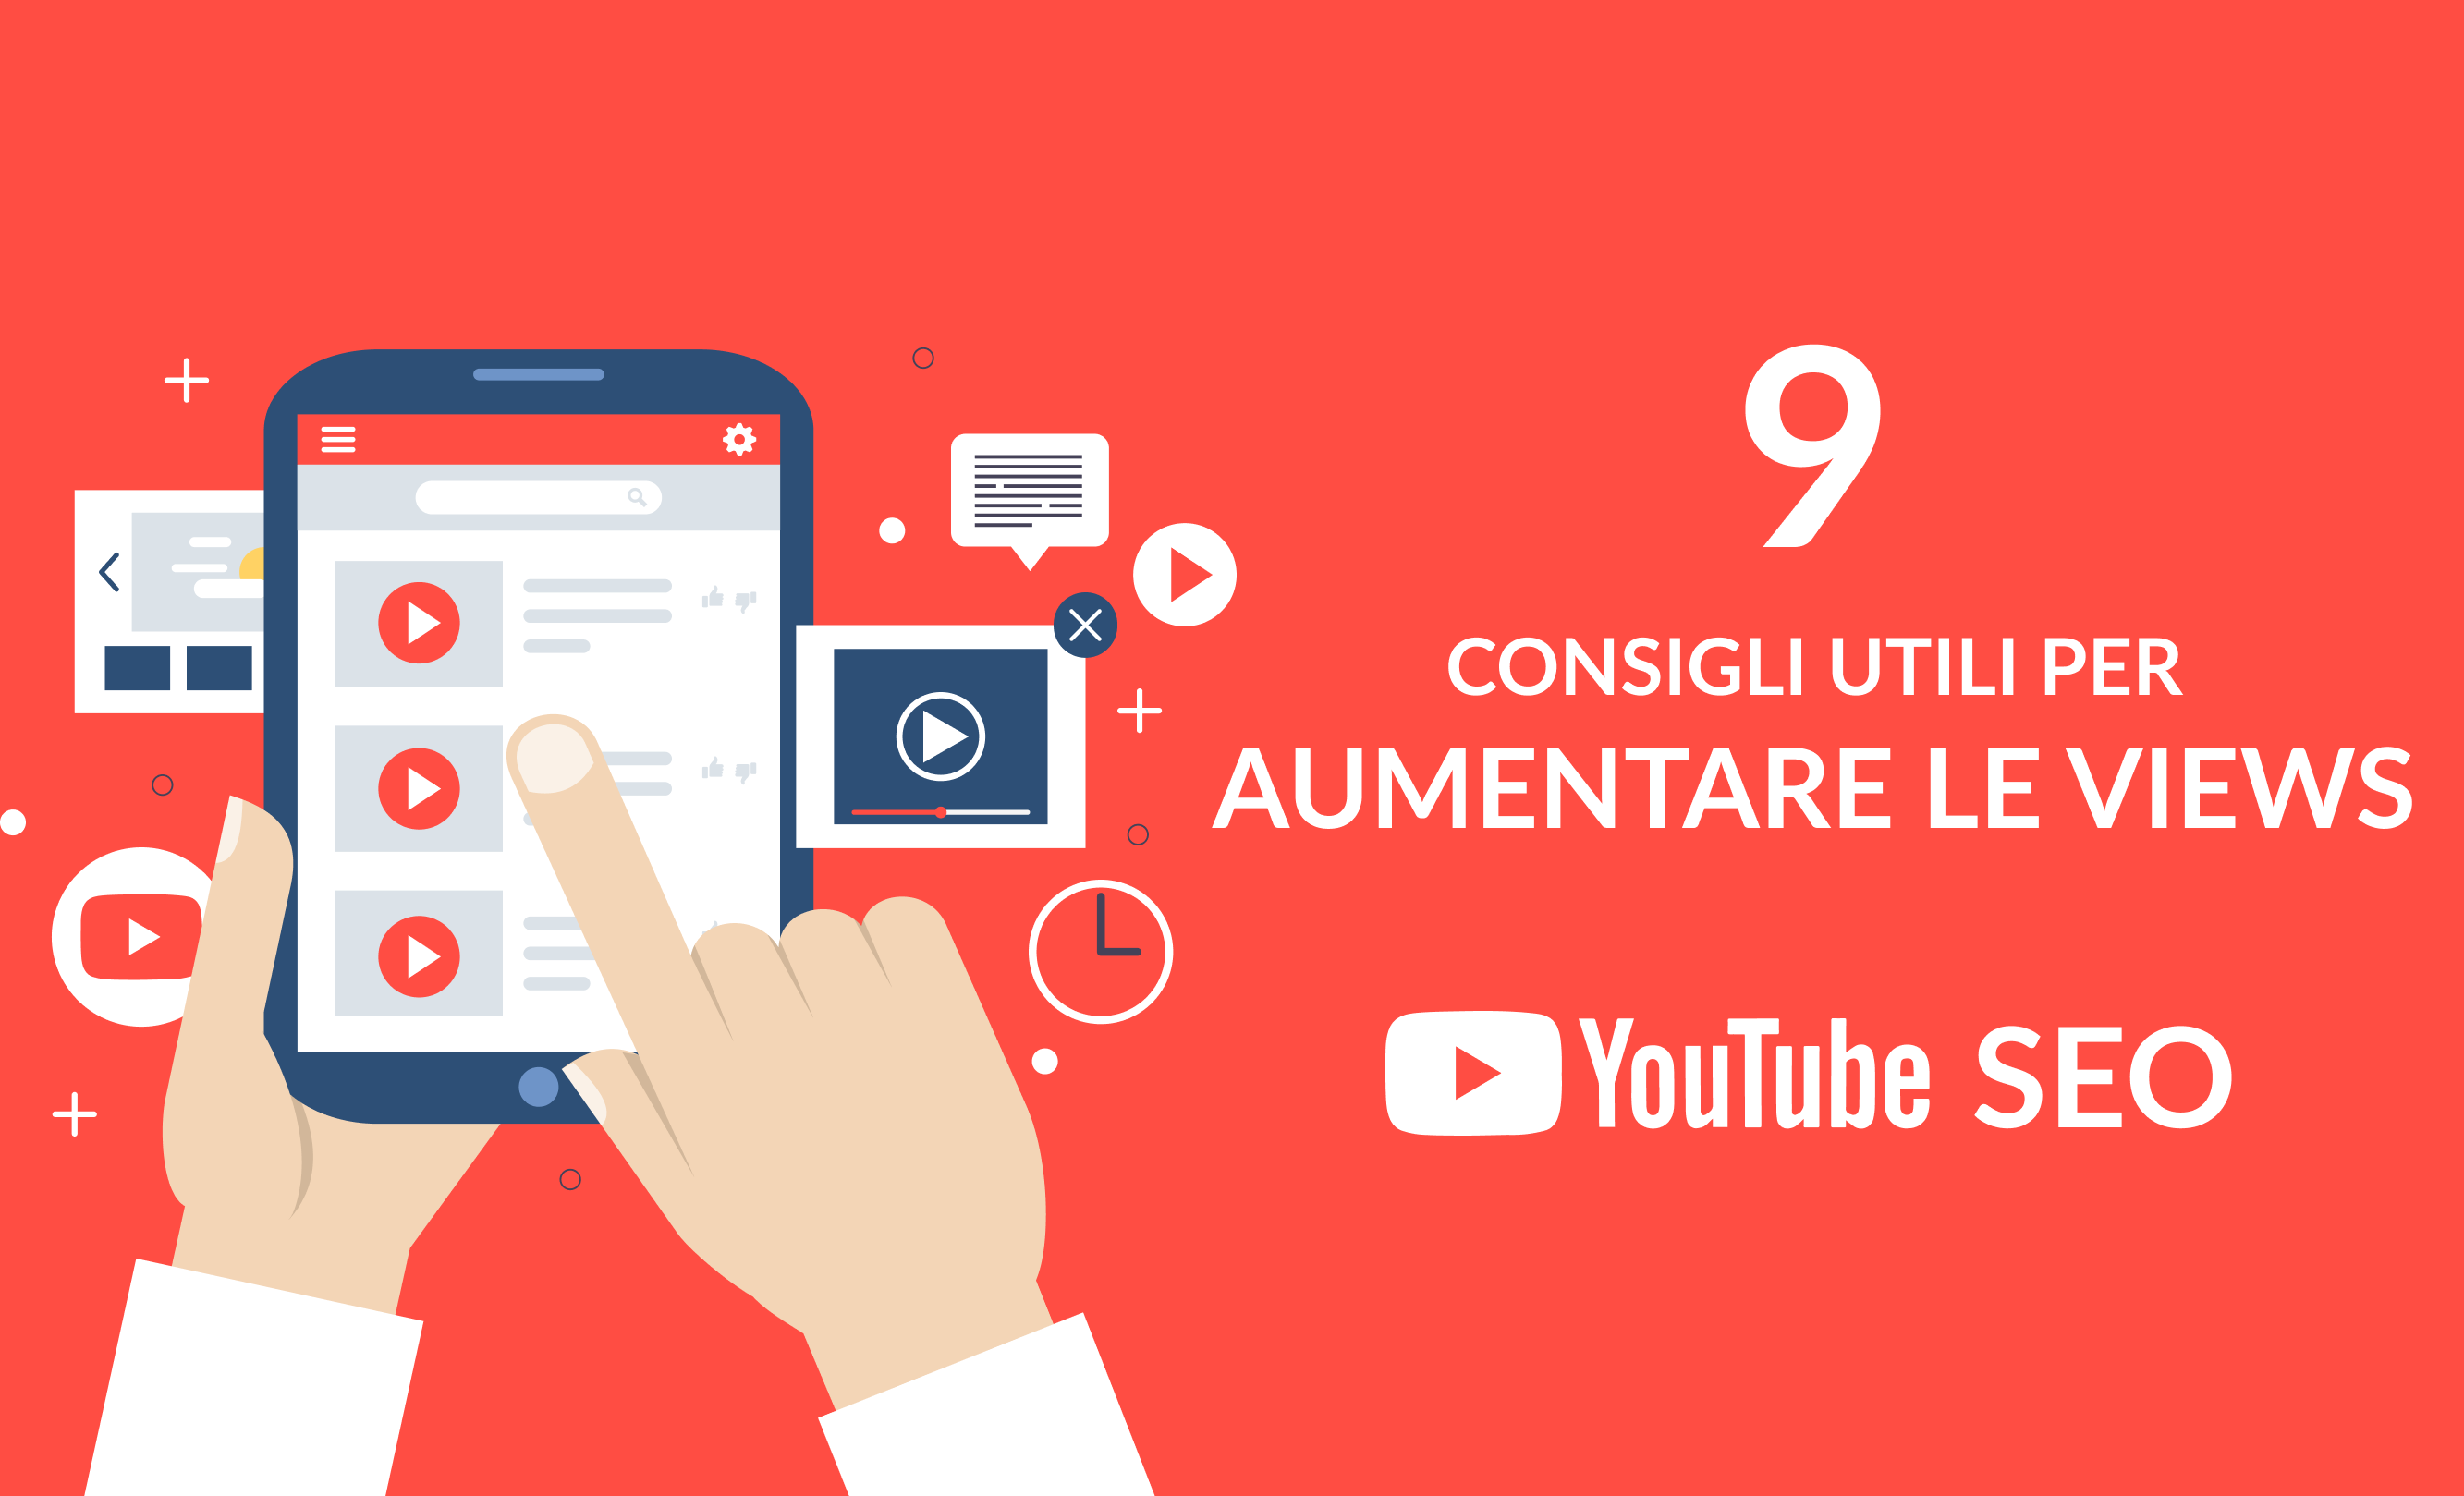 youtube-seo-aumentare-views